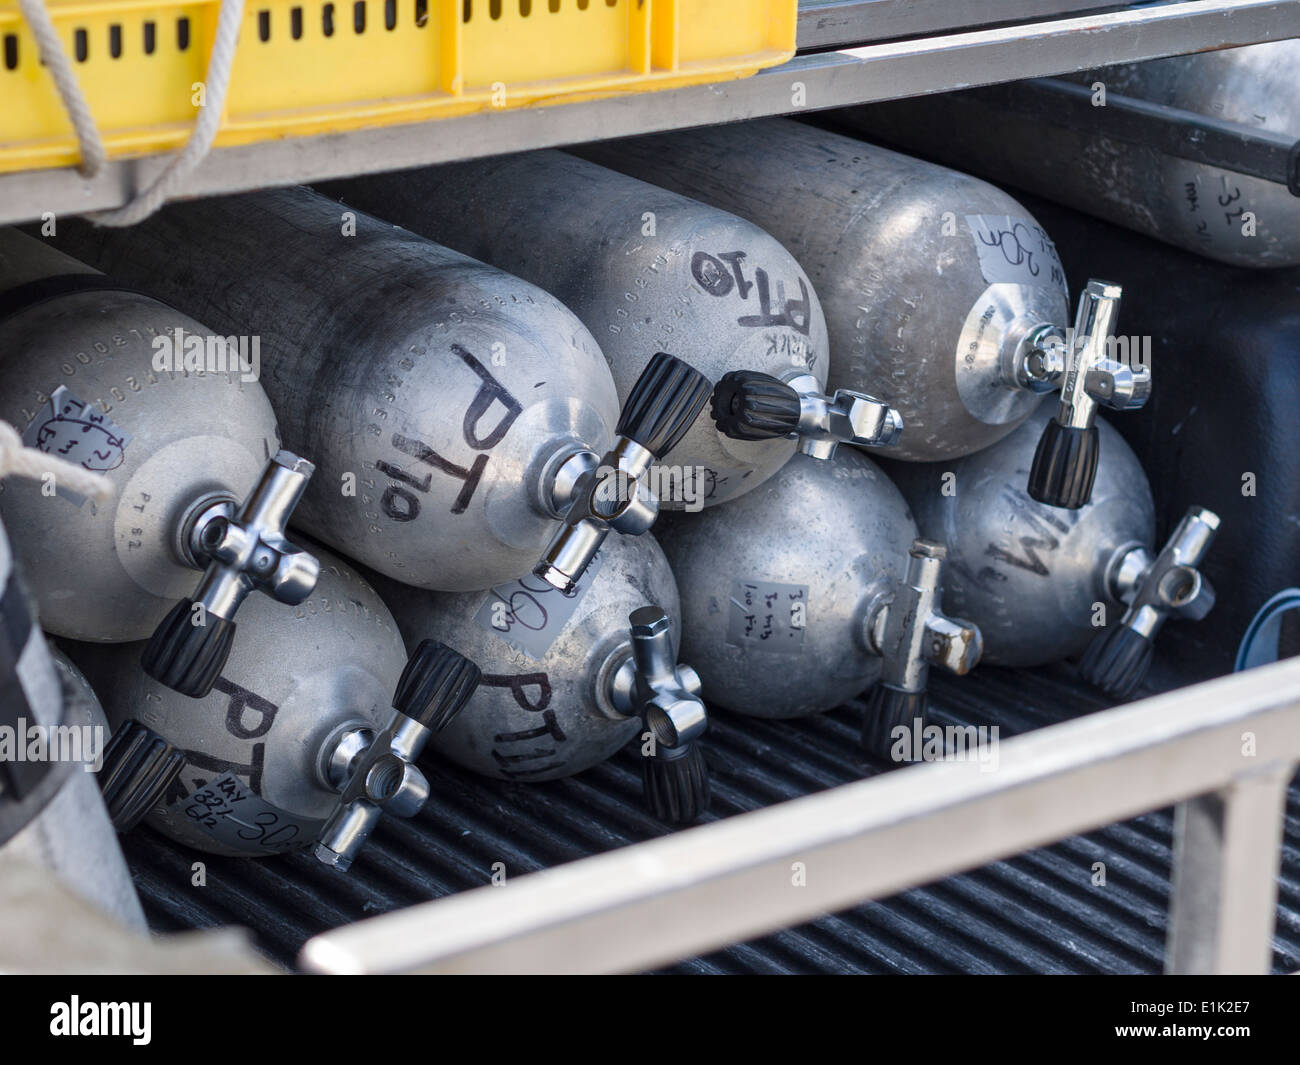 Scuba Diving Tanks. Eight air tanks stacked and ready for transport to a diving boat. - Stock Image